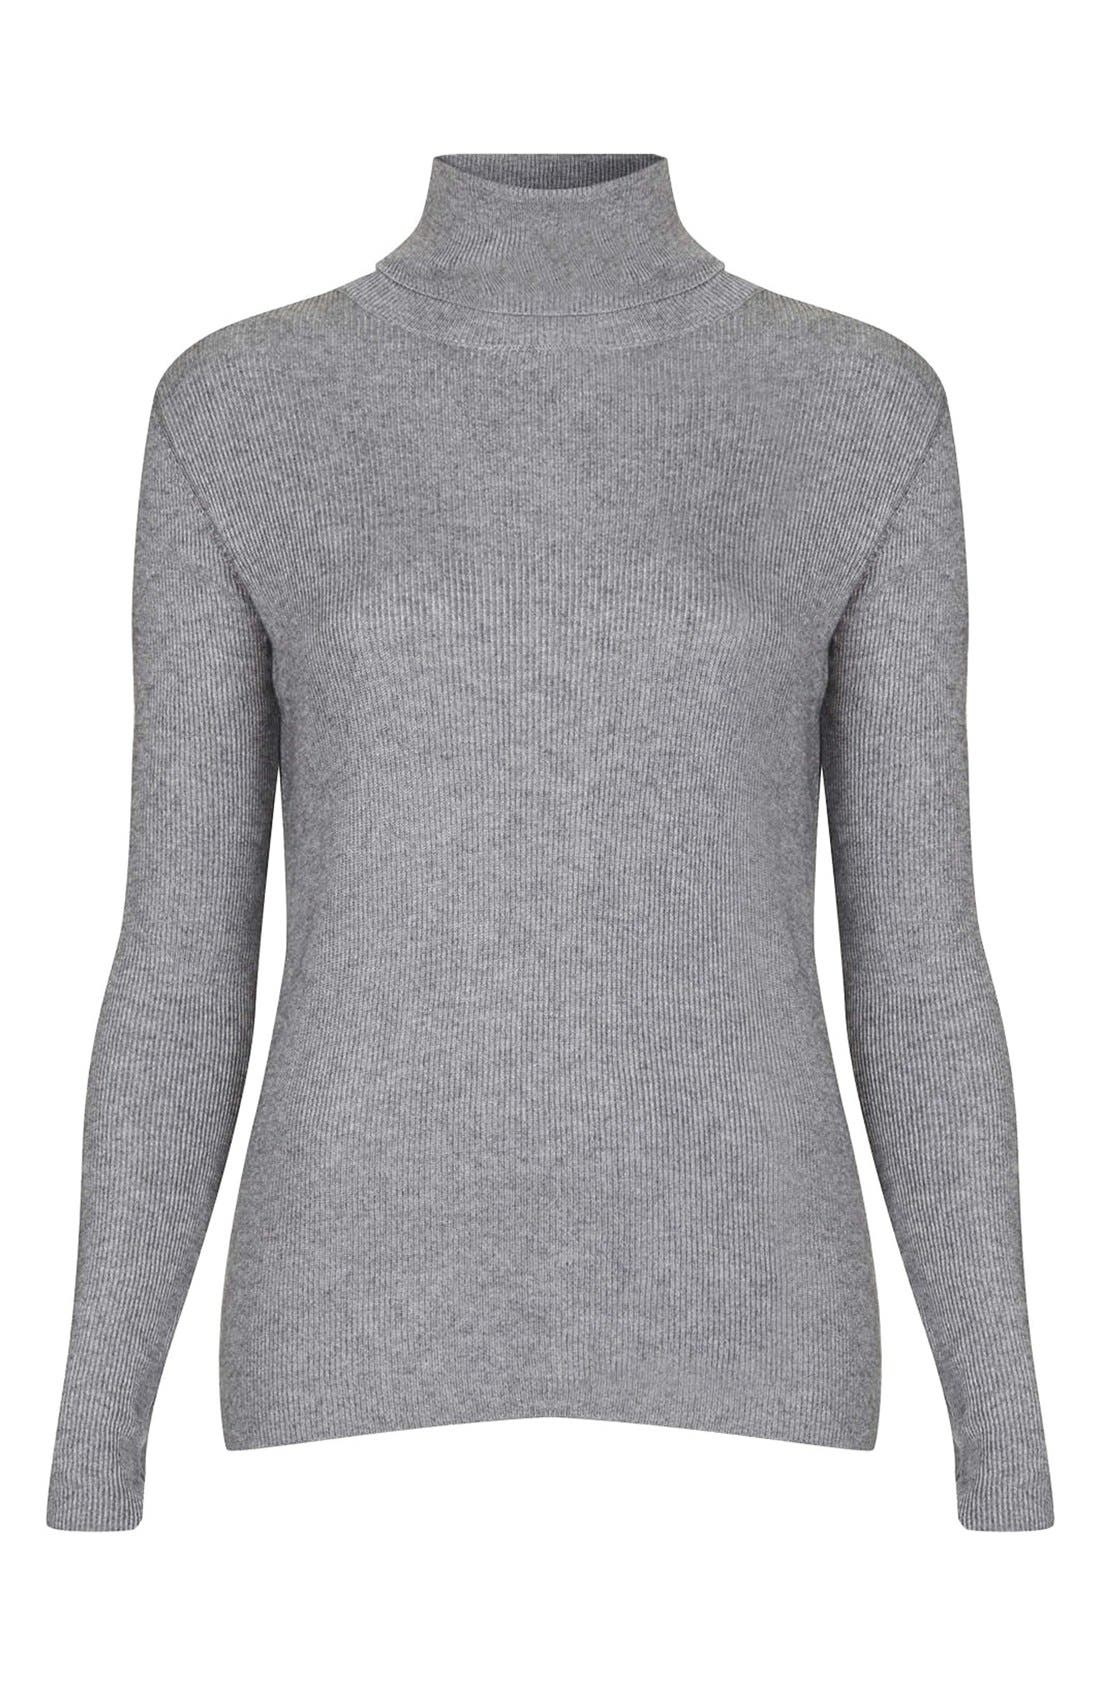 Main Image - Topshop Ribbed Turtleneck Sweater